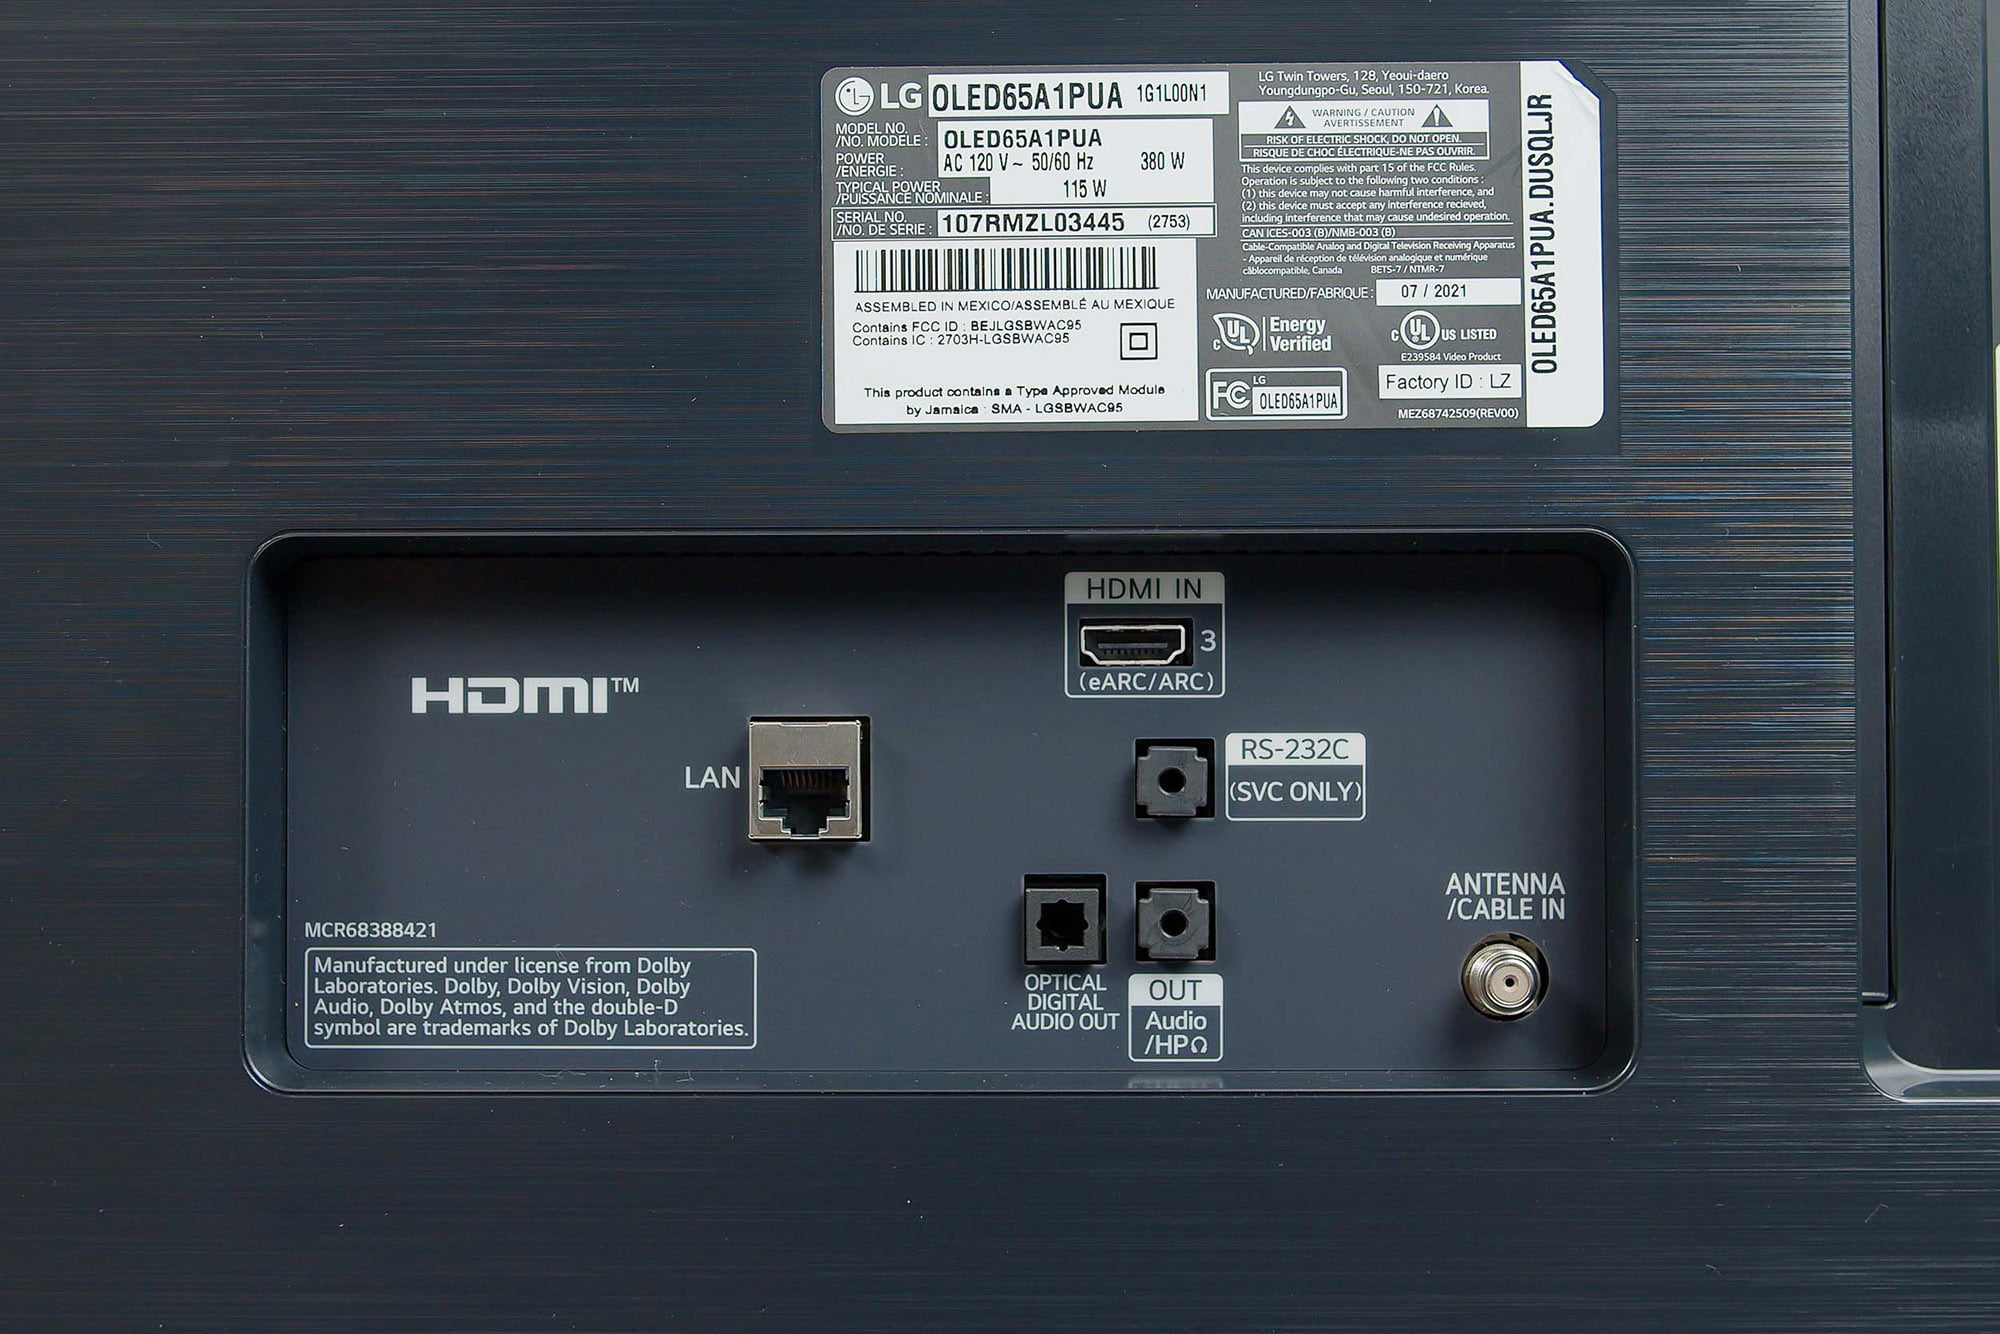 LG A1 OLED 4K HDR TV ports and plugins.